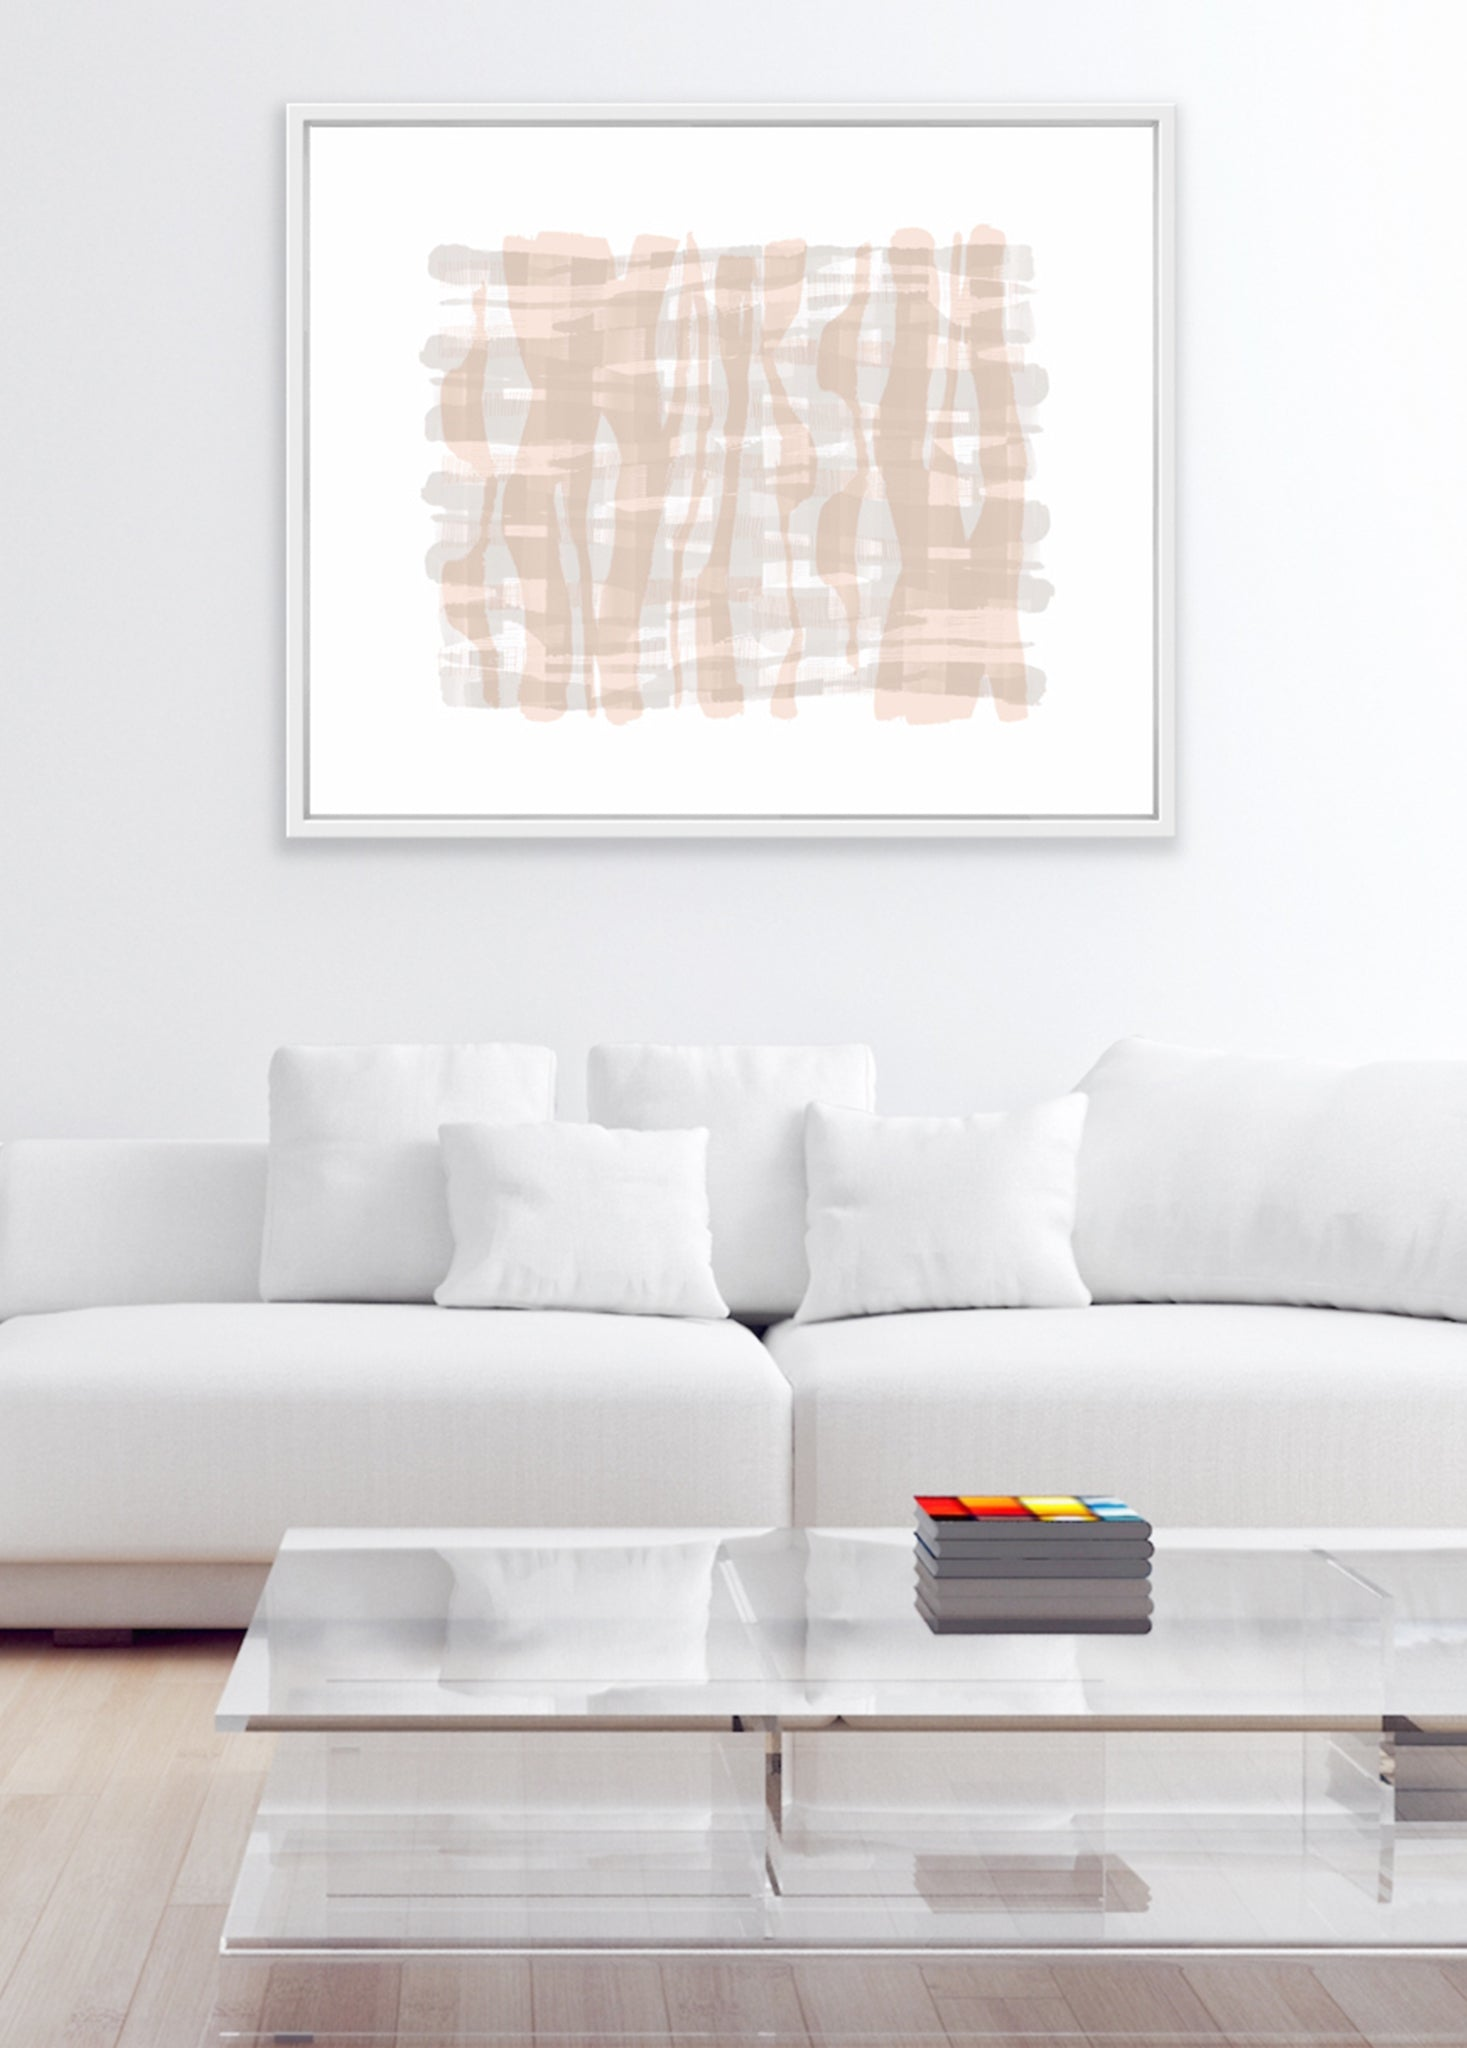 minimalist abstract framed art